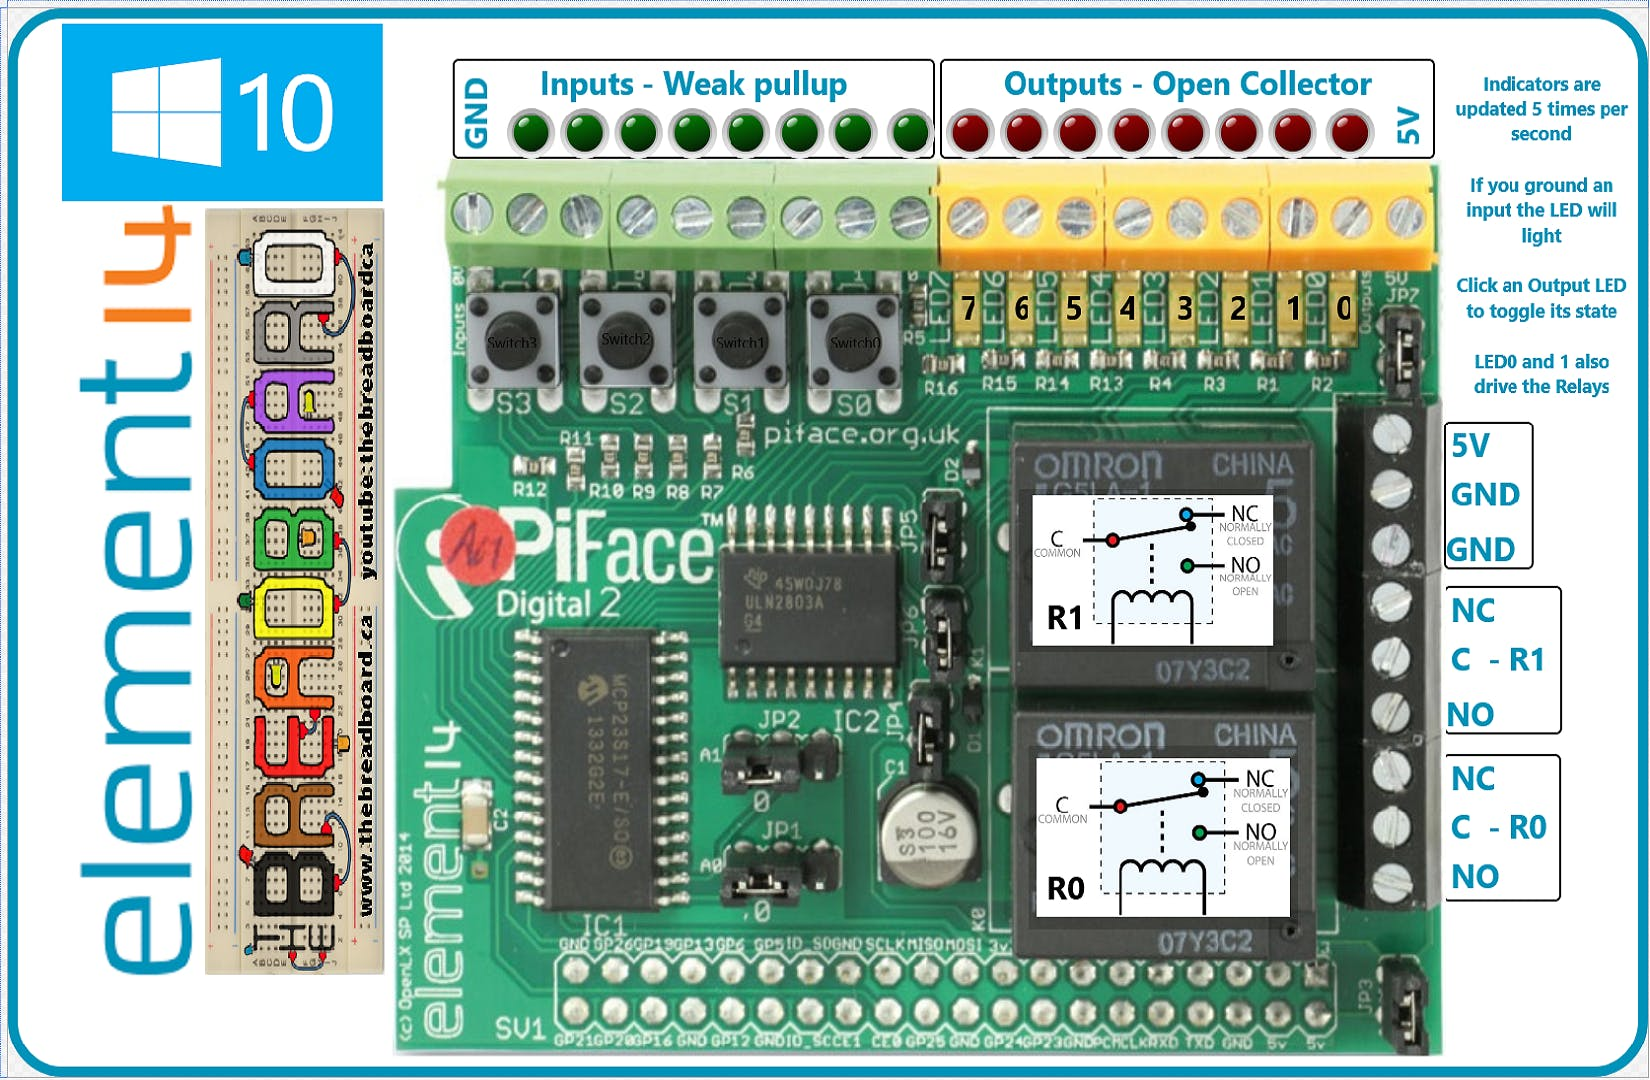 PiFace Digital 2 on a Rasberry PI 2 and Windows 10 IoT